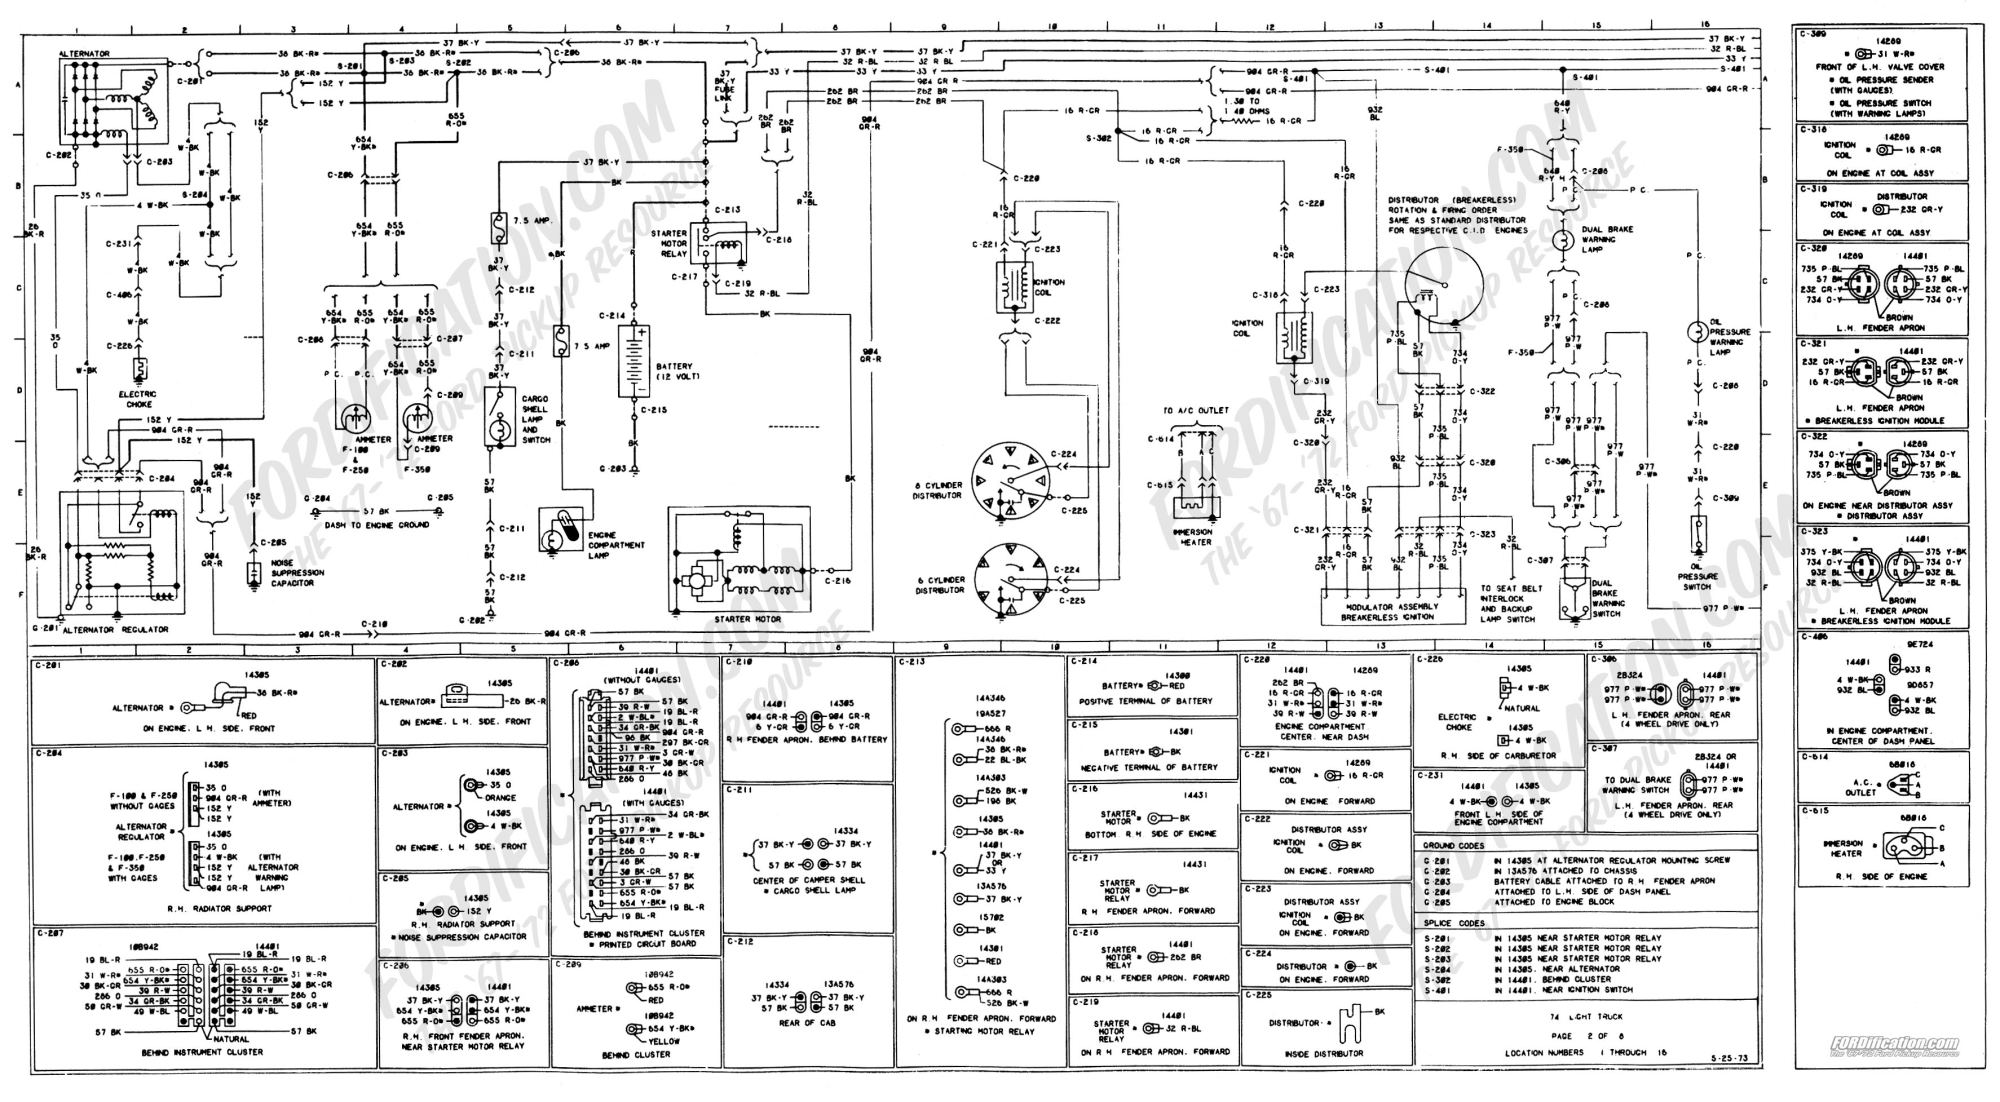 hight resolution of 1997 ford f800 wiring diagrams electrical wiring diagrams ford 5000 tractor wiring harness diagram ford 800 wiring diagram